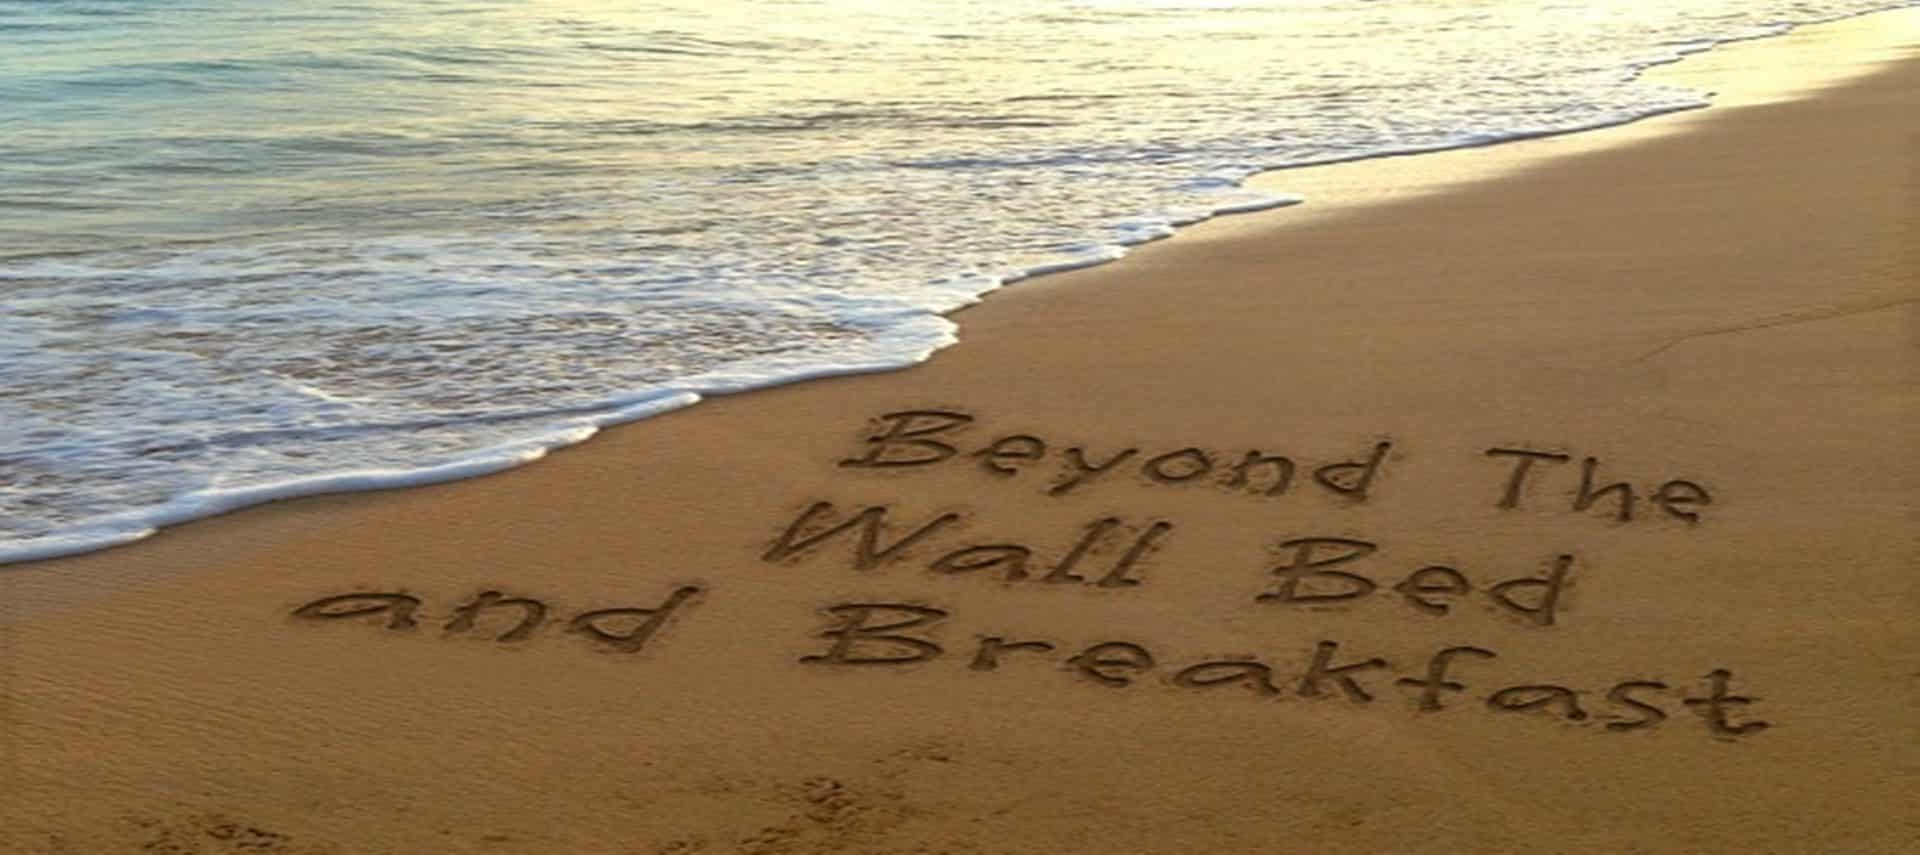 Waves lapping at sand beach with words in teh sand: Beyond the Wall Bed and Breakfast